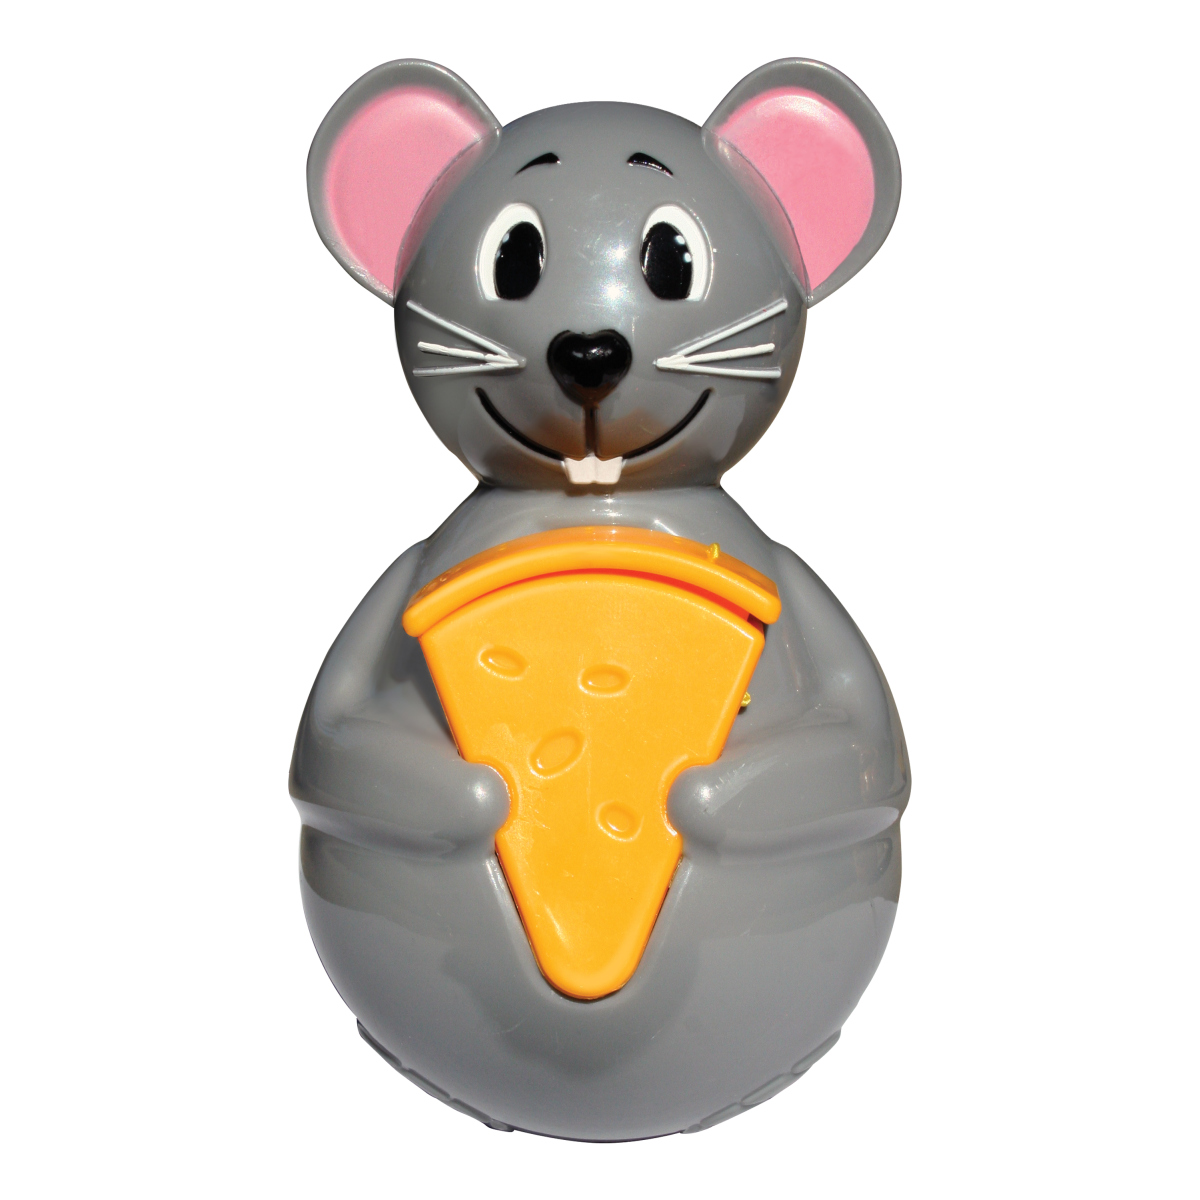 Bat-a-bout chime mouse mix